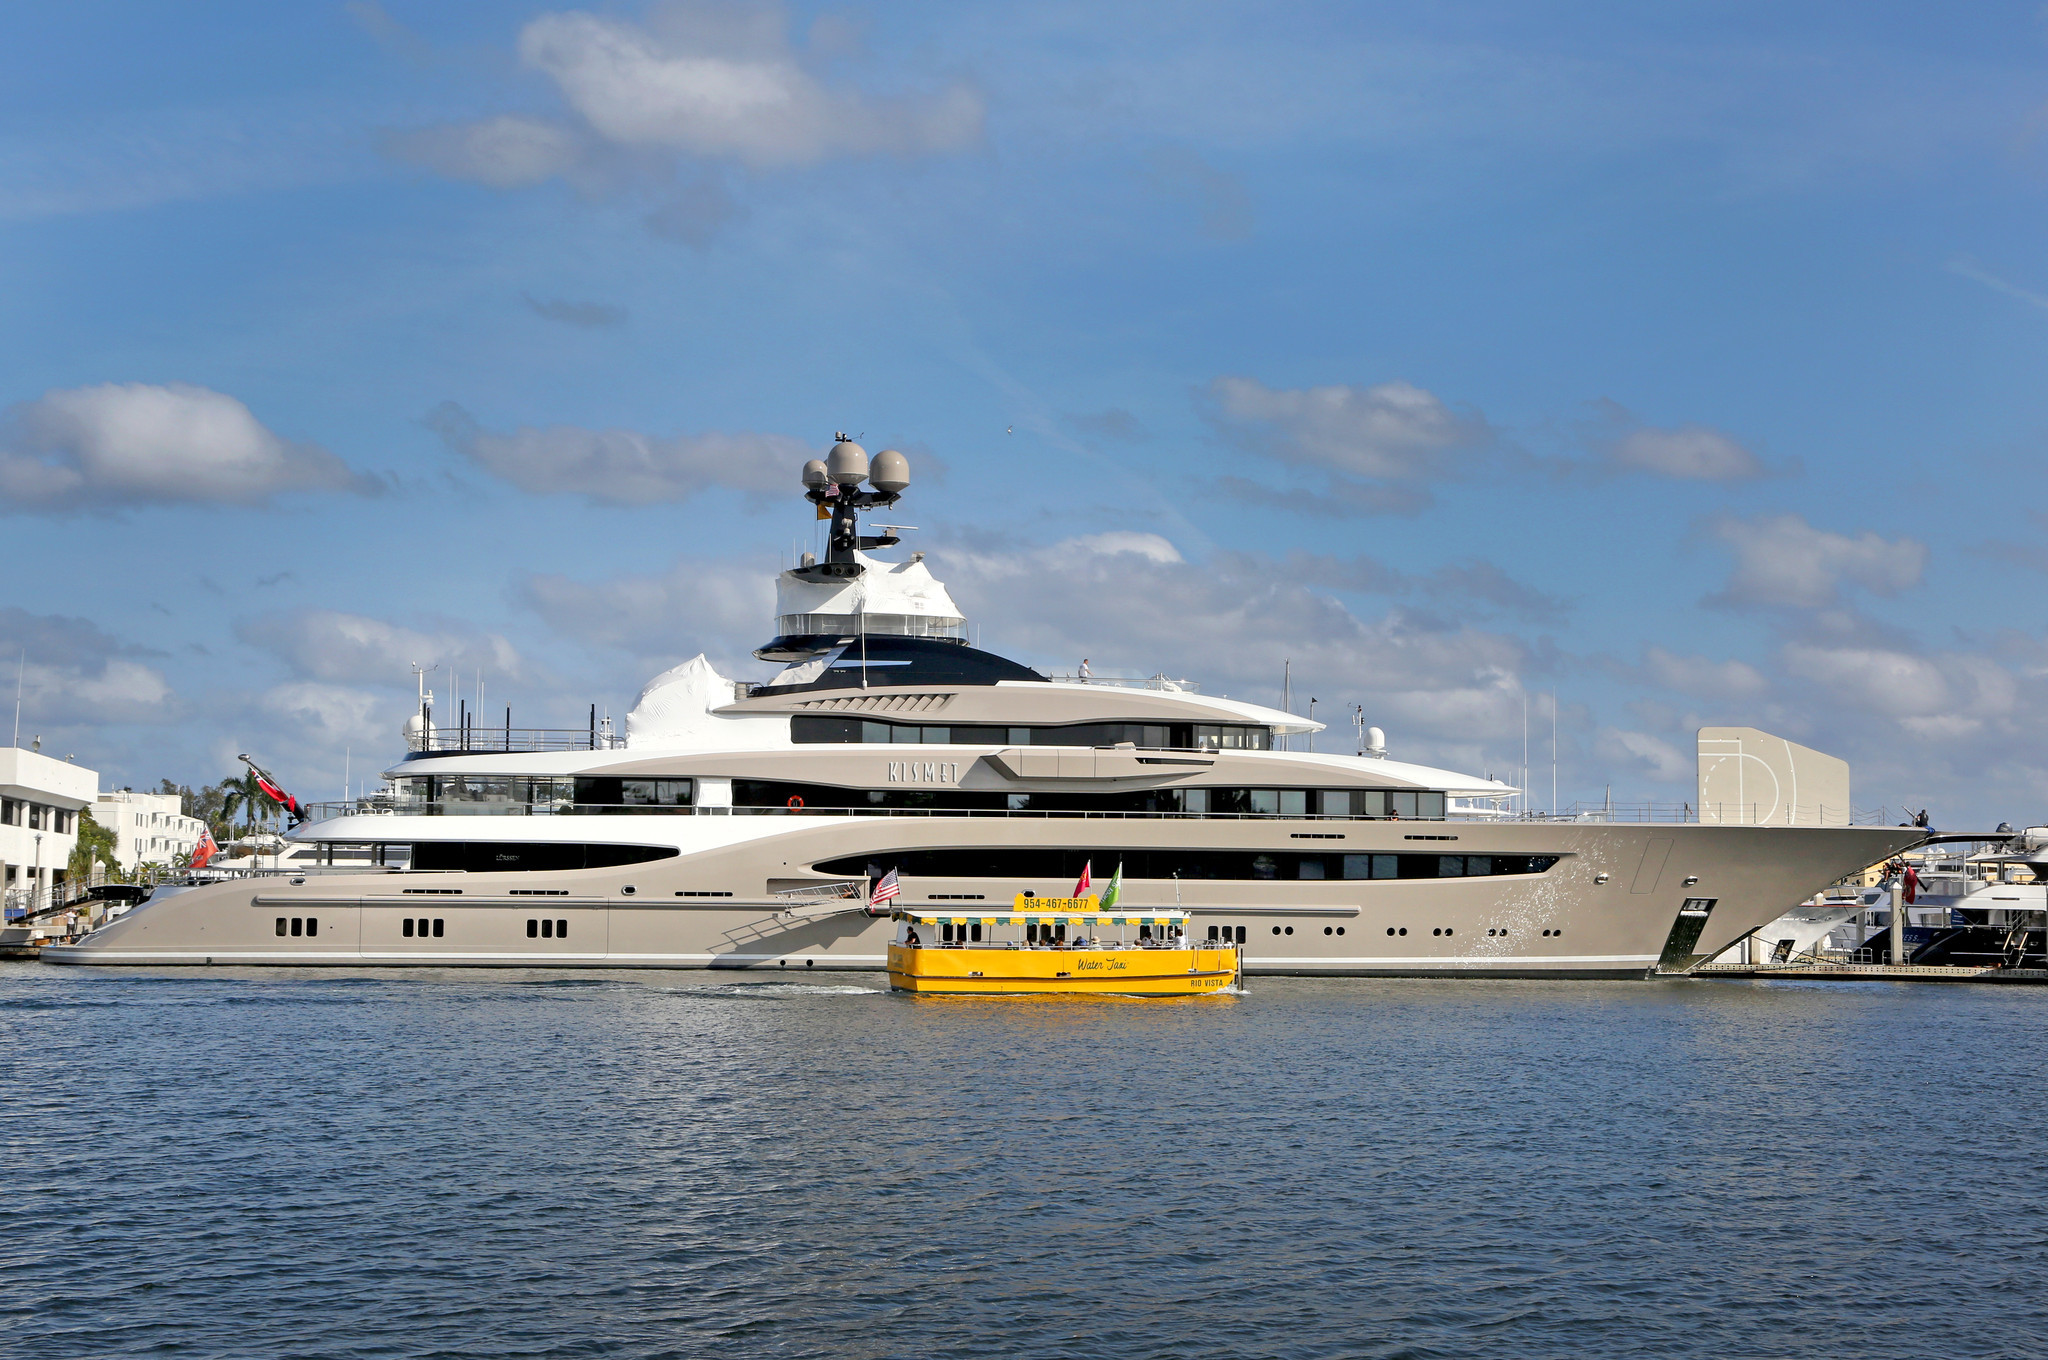 Fort Lauderdale S Bahia Mar Marina Hosts Its Biggest Yacht Ever 312